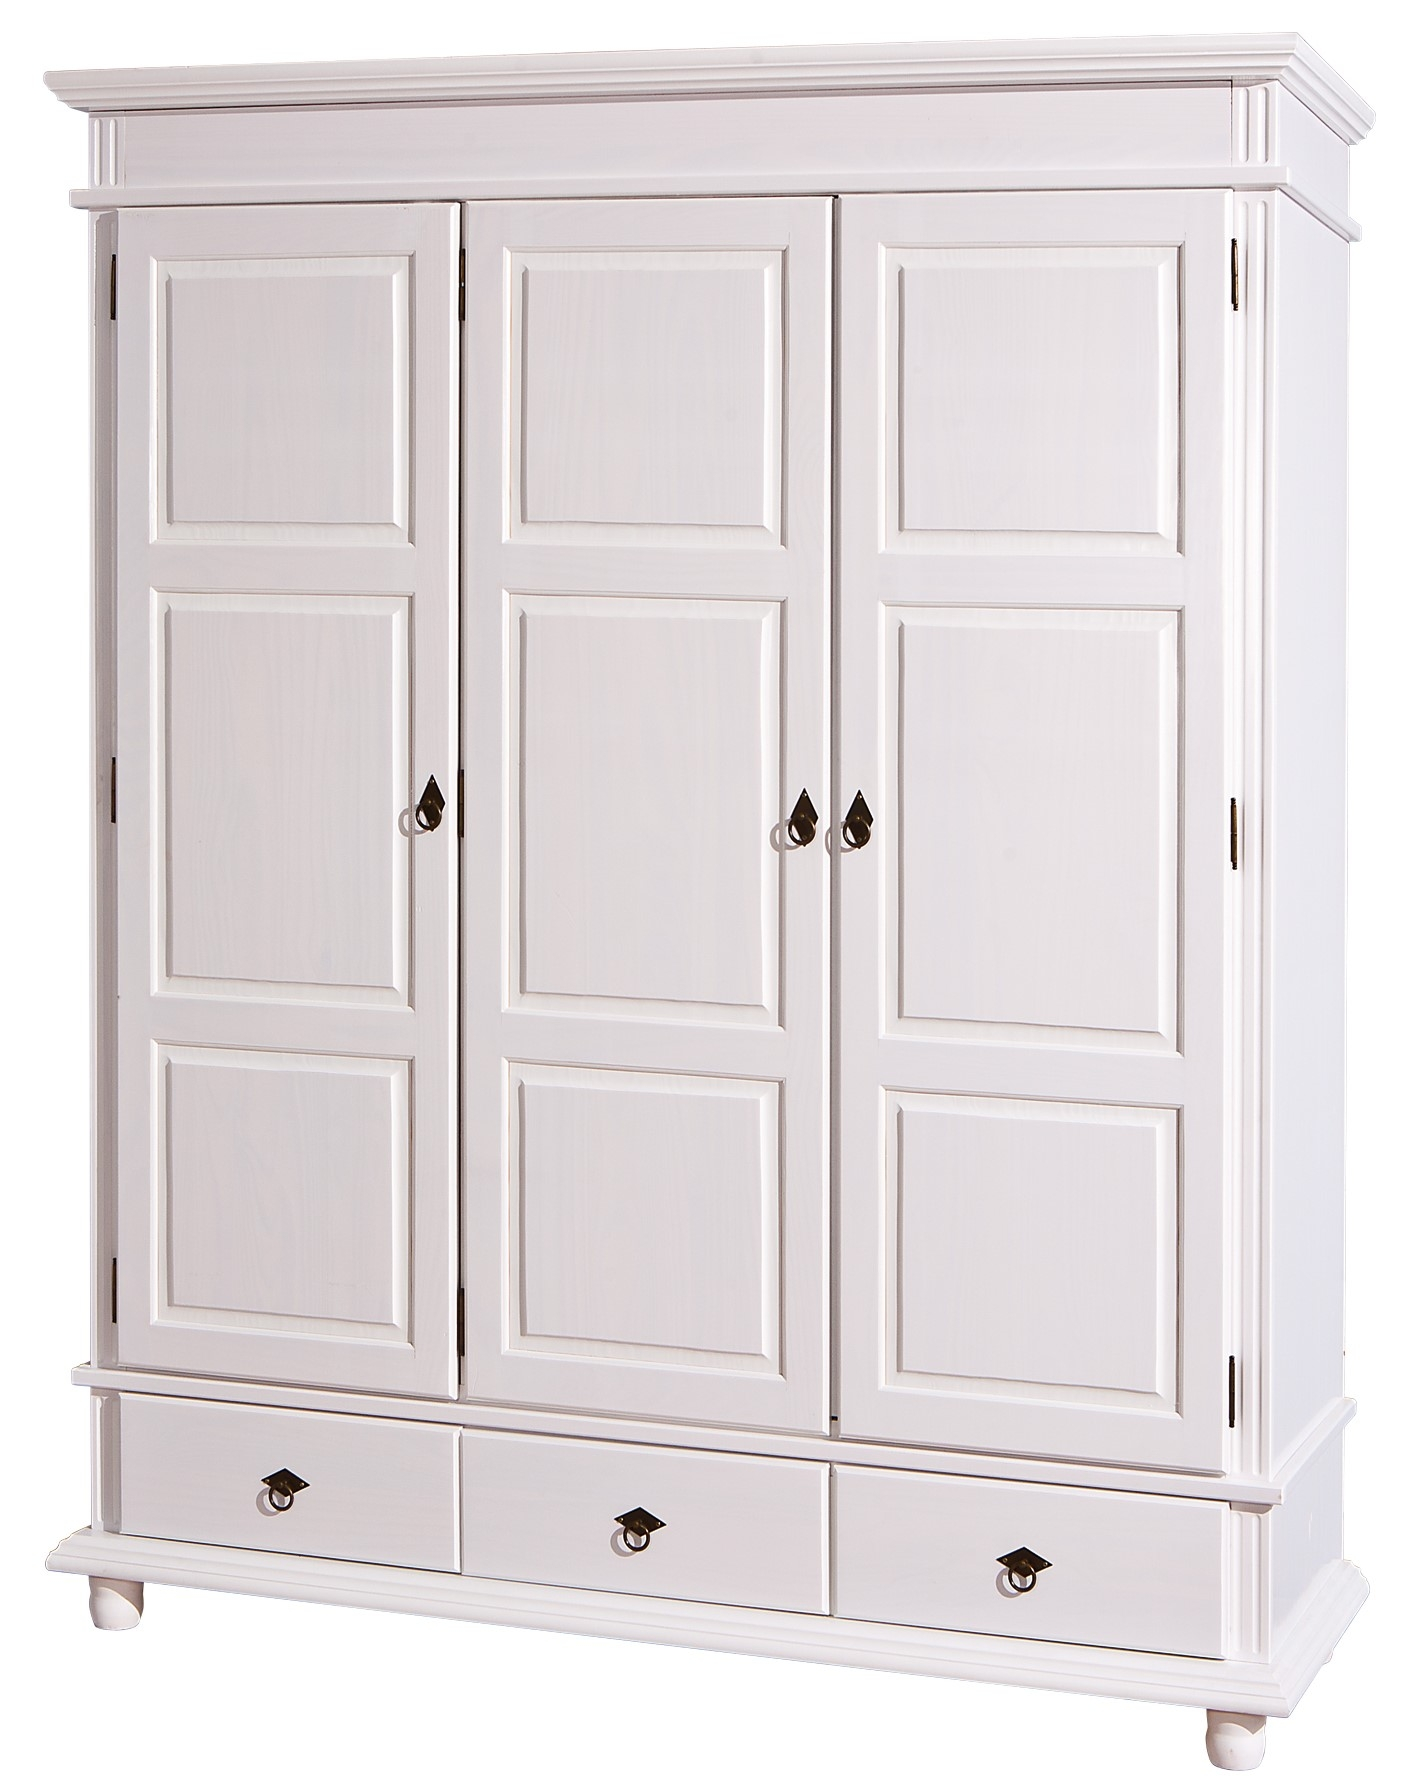 armoire blanche ikea cool simple armoire chambre blanche blanche pin massif danz armoire. Black Bedroom Furniture Sets. Home Design Ideas